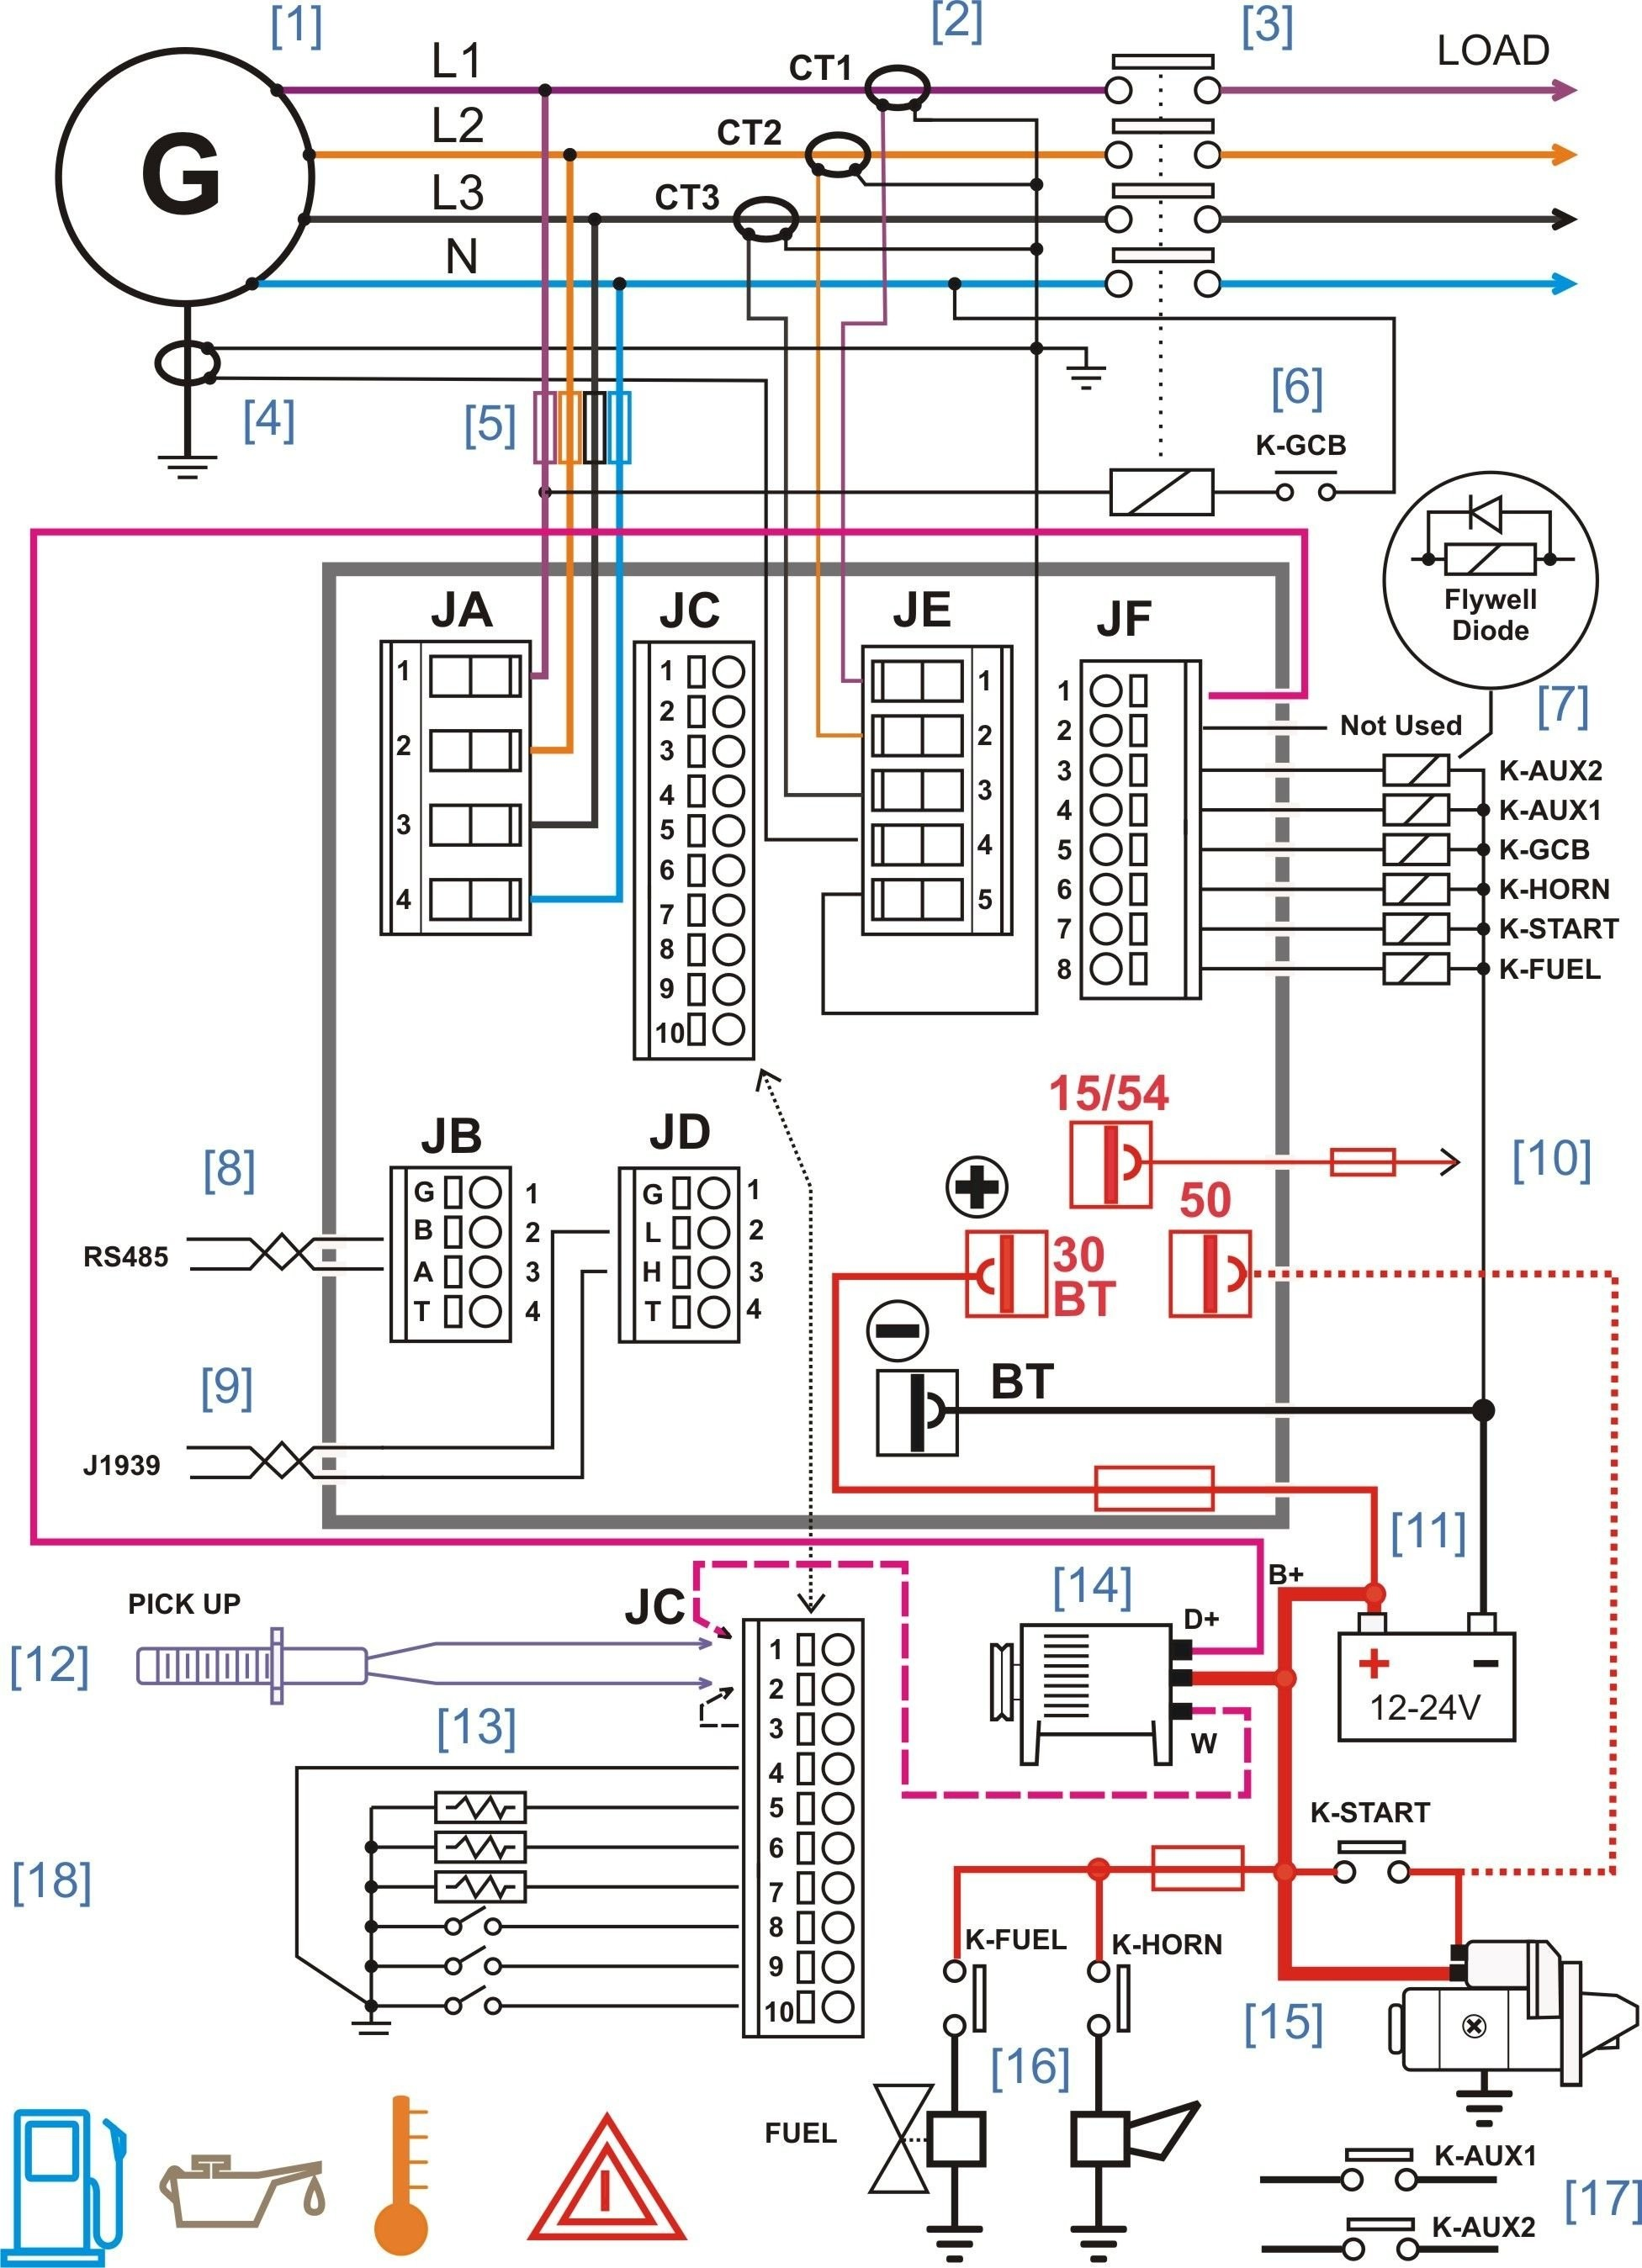 Power Converter 6345 Wiring Diagram Wn 2508] Magnetek 7345 Power Converter Wiring Diagram Of Power Converter 6345 Wiring Diagram Unique Loop Wiring Diagrams Diagram Wiringdiagram